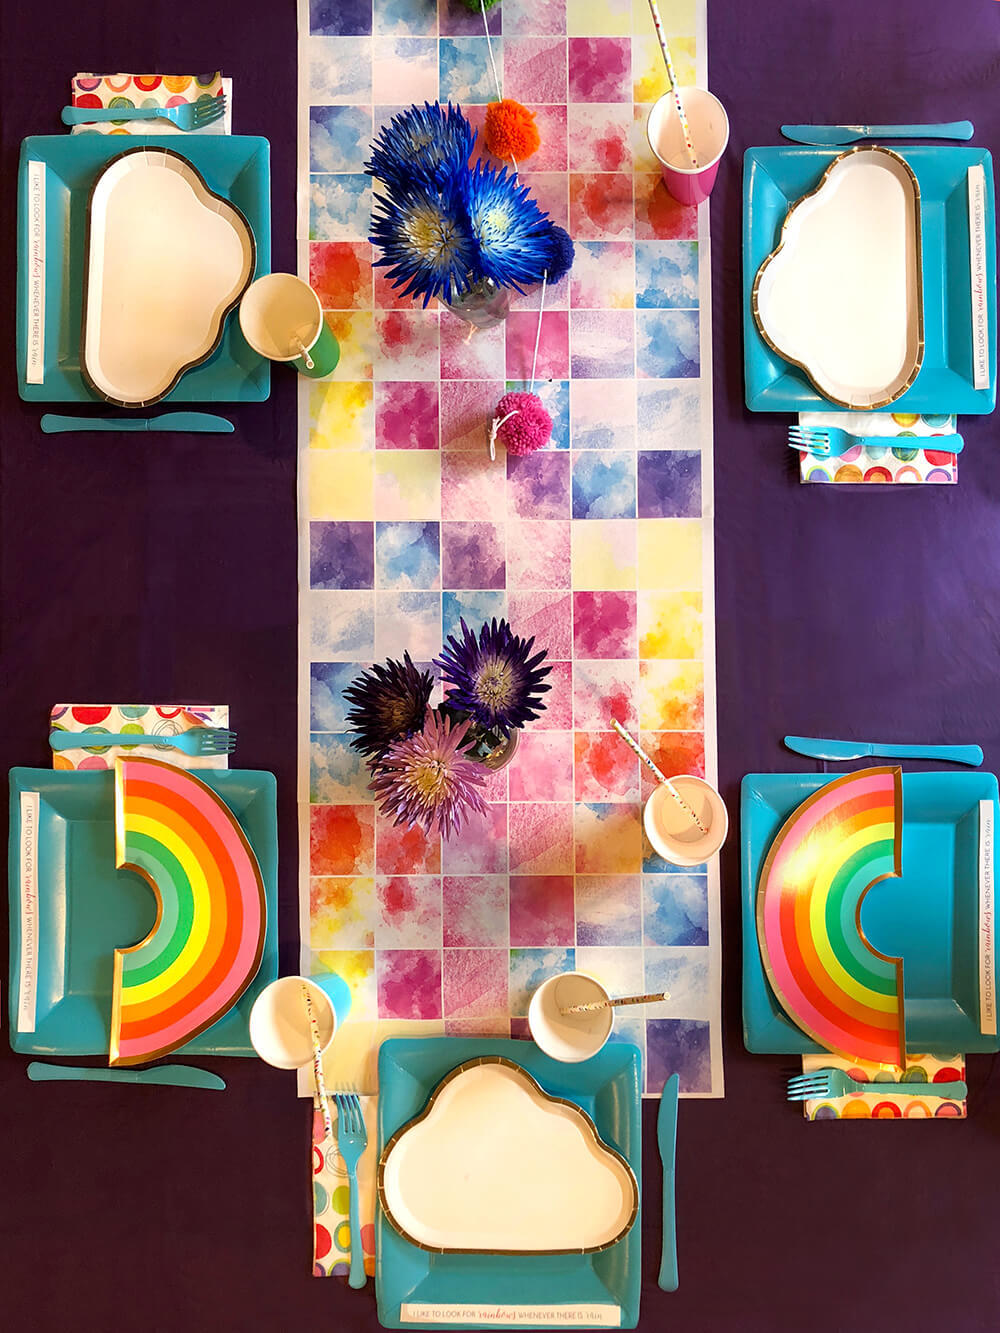 Rainbow flowers and plates on watercolor runner table for over the rainbow party